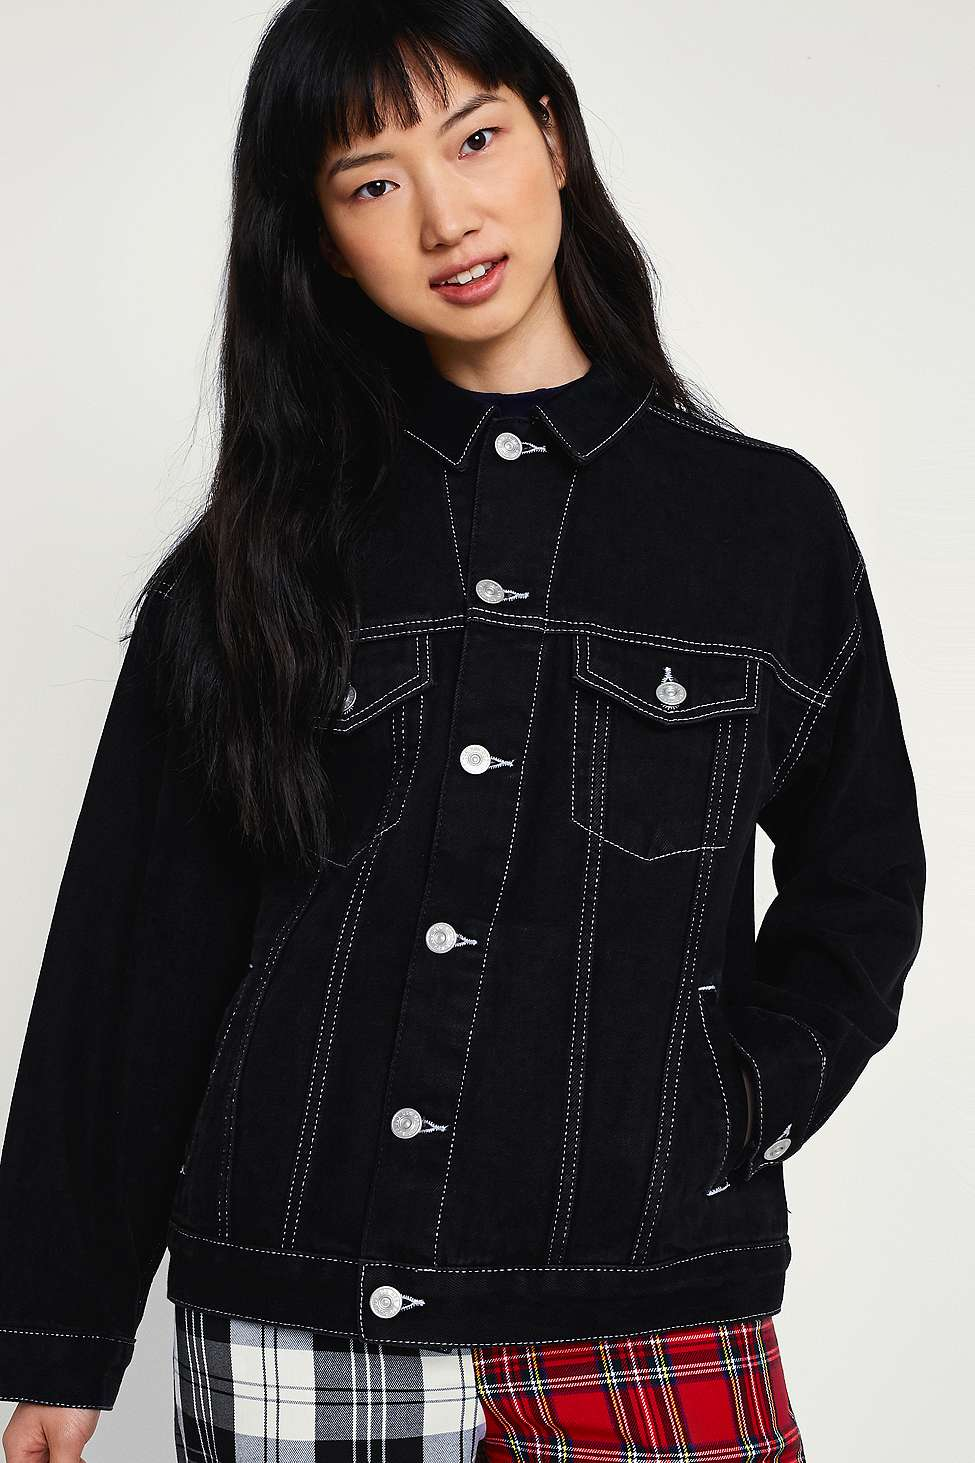 Bdg Black Contrast Stitched Denim Jacket Urban Outfitters